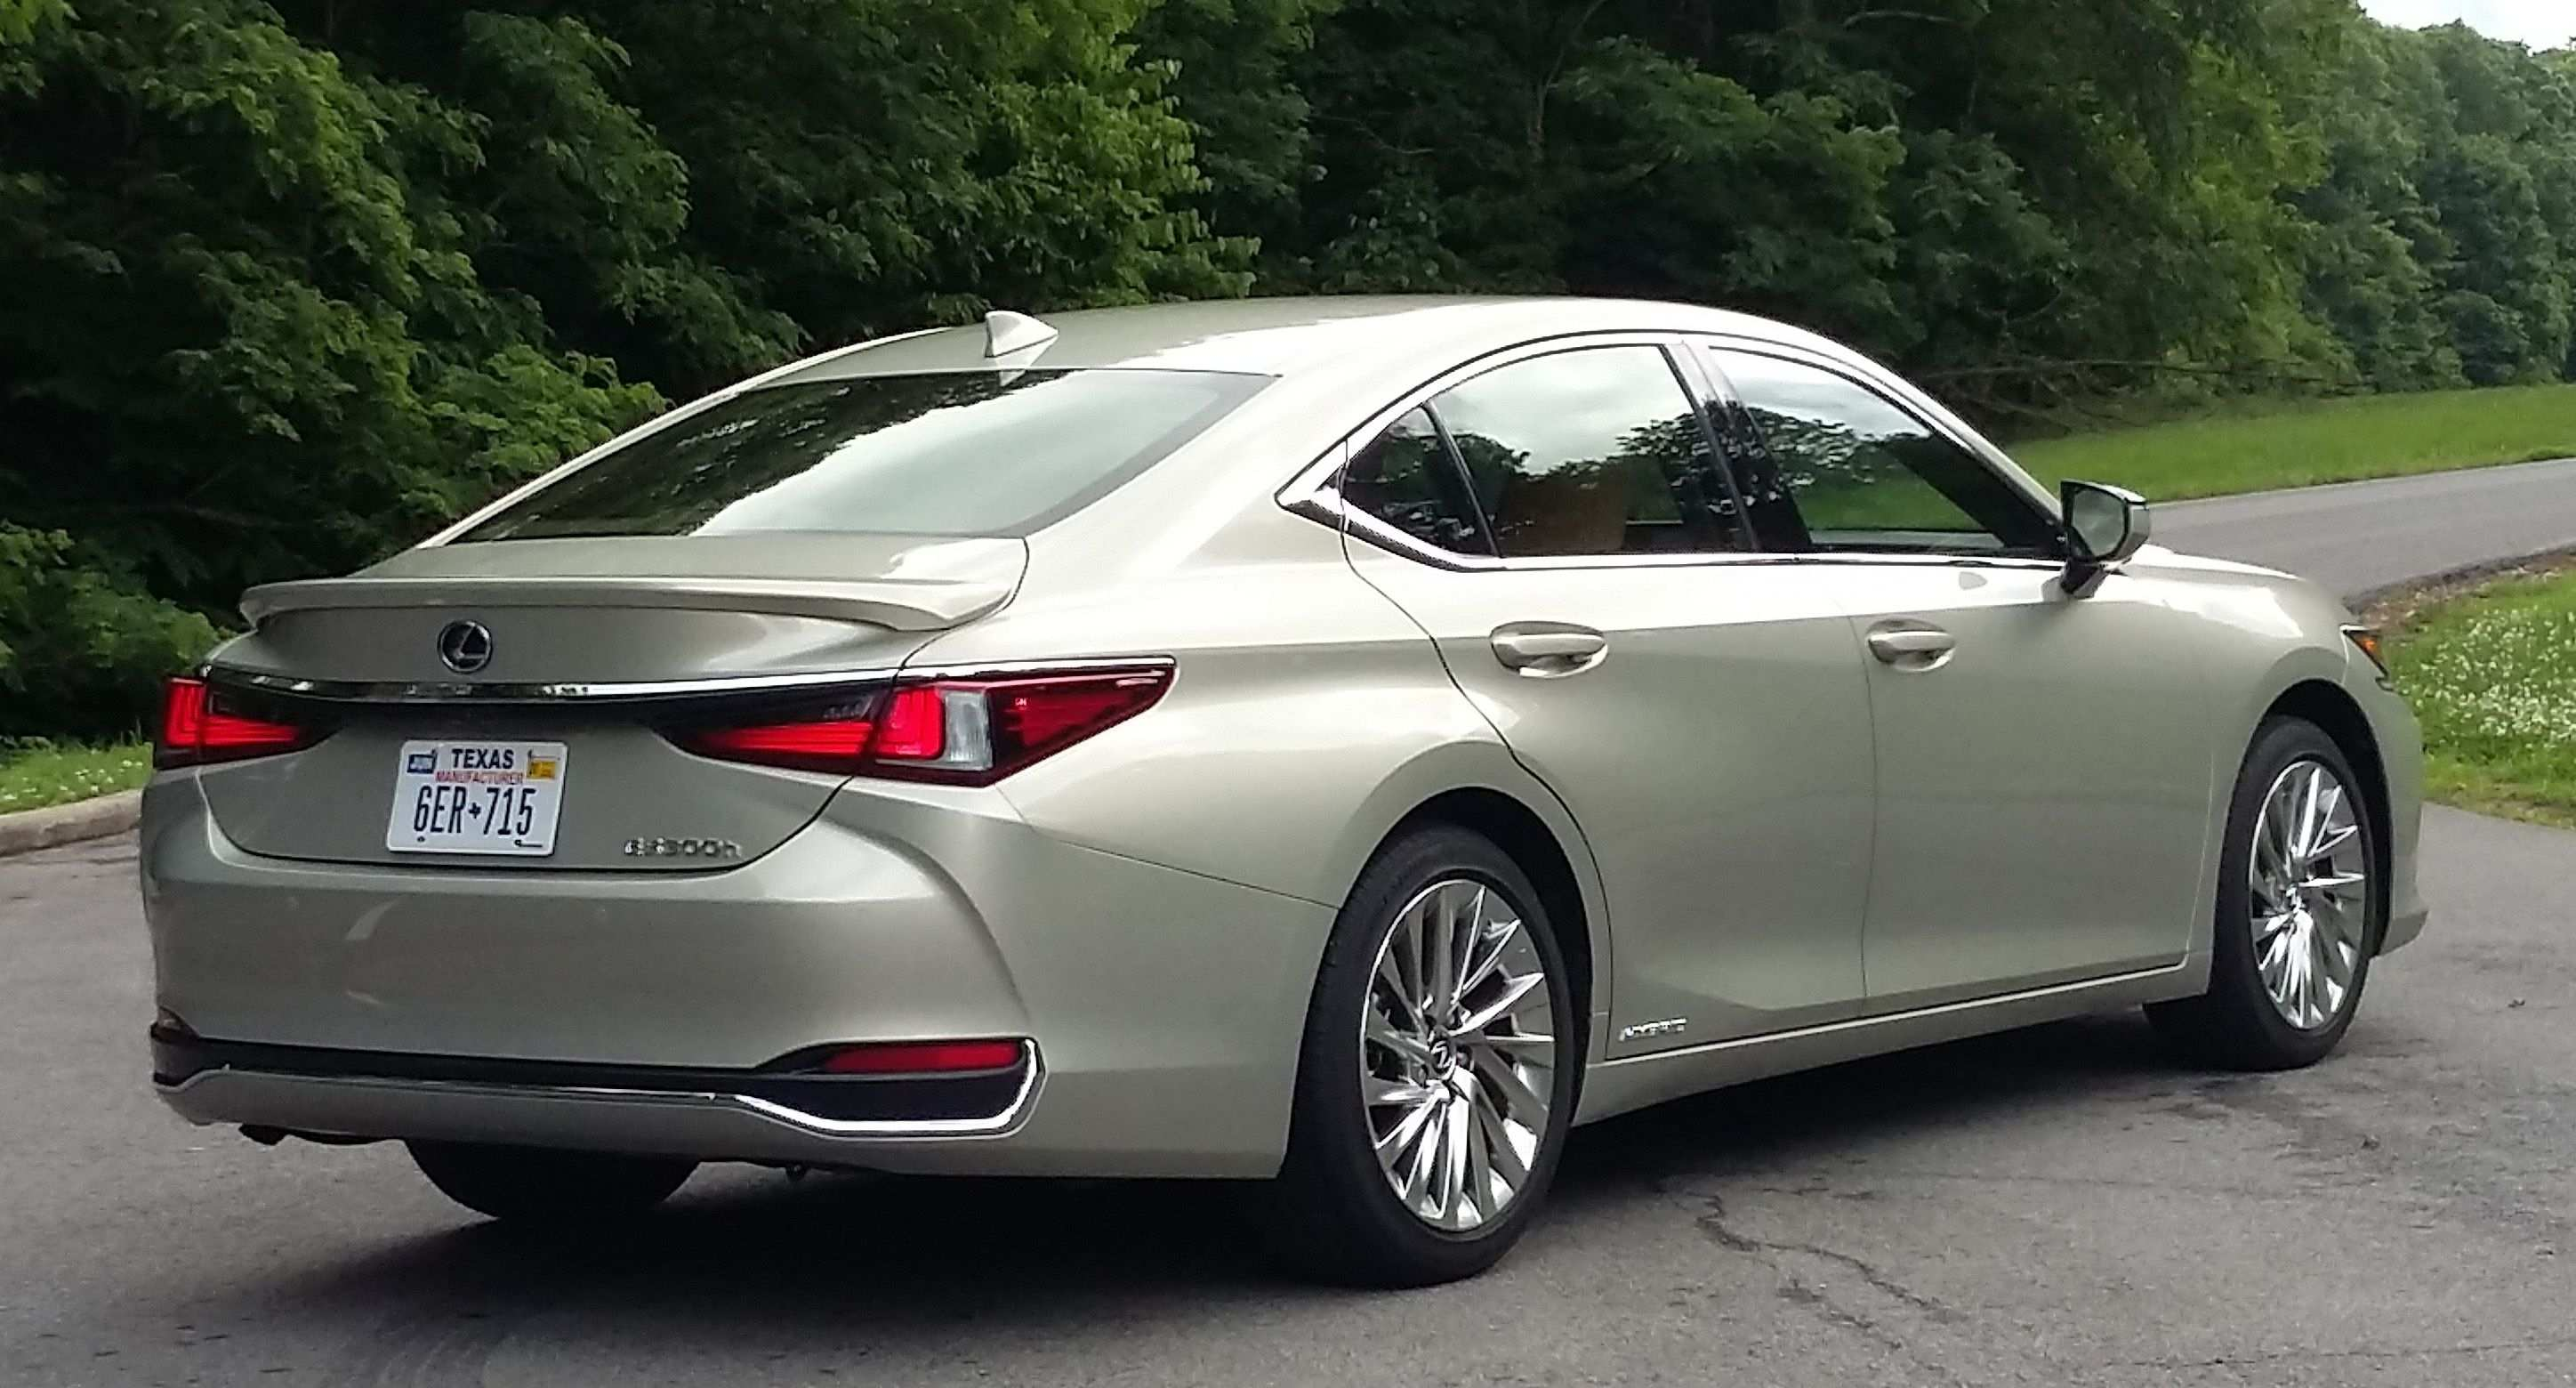 31 New When Lexus 2019 Come Out Specs